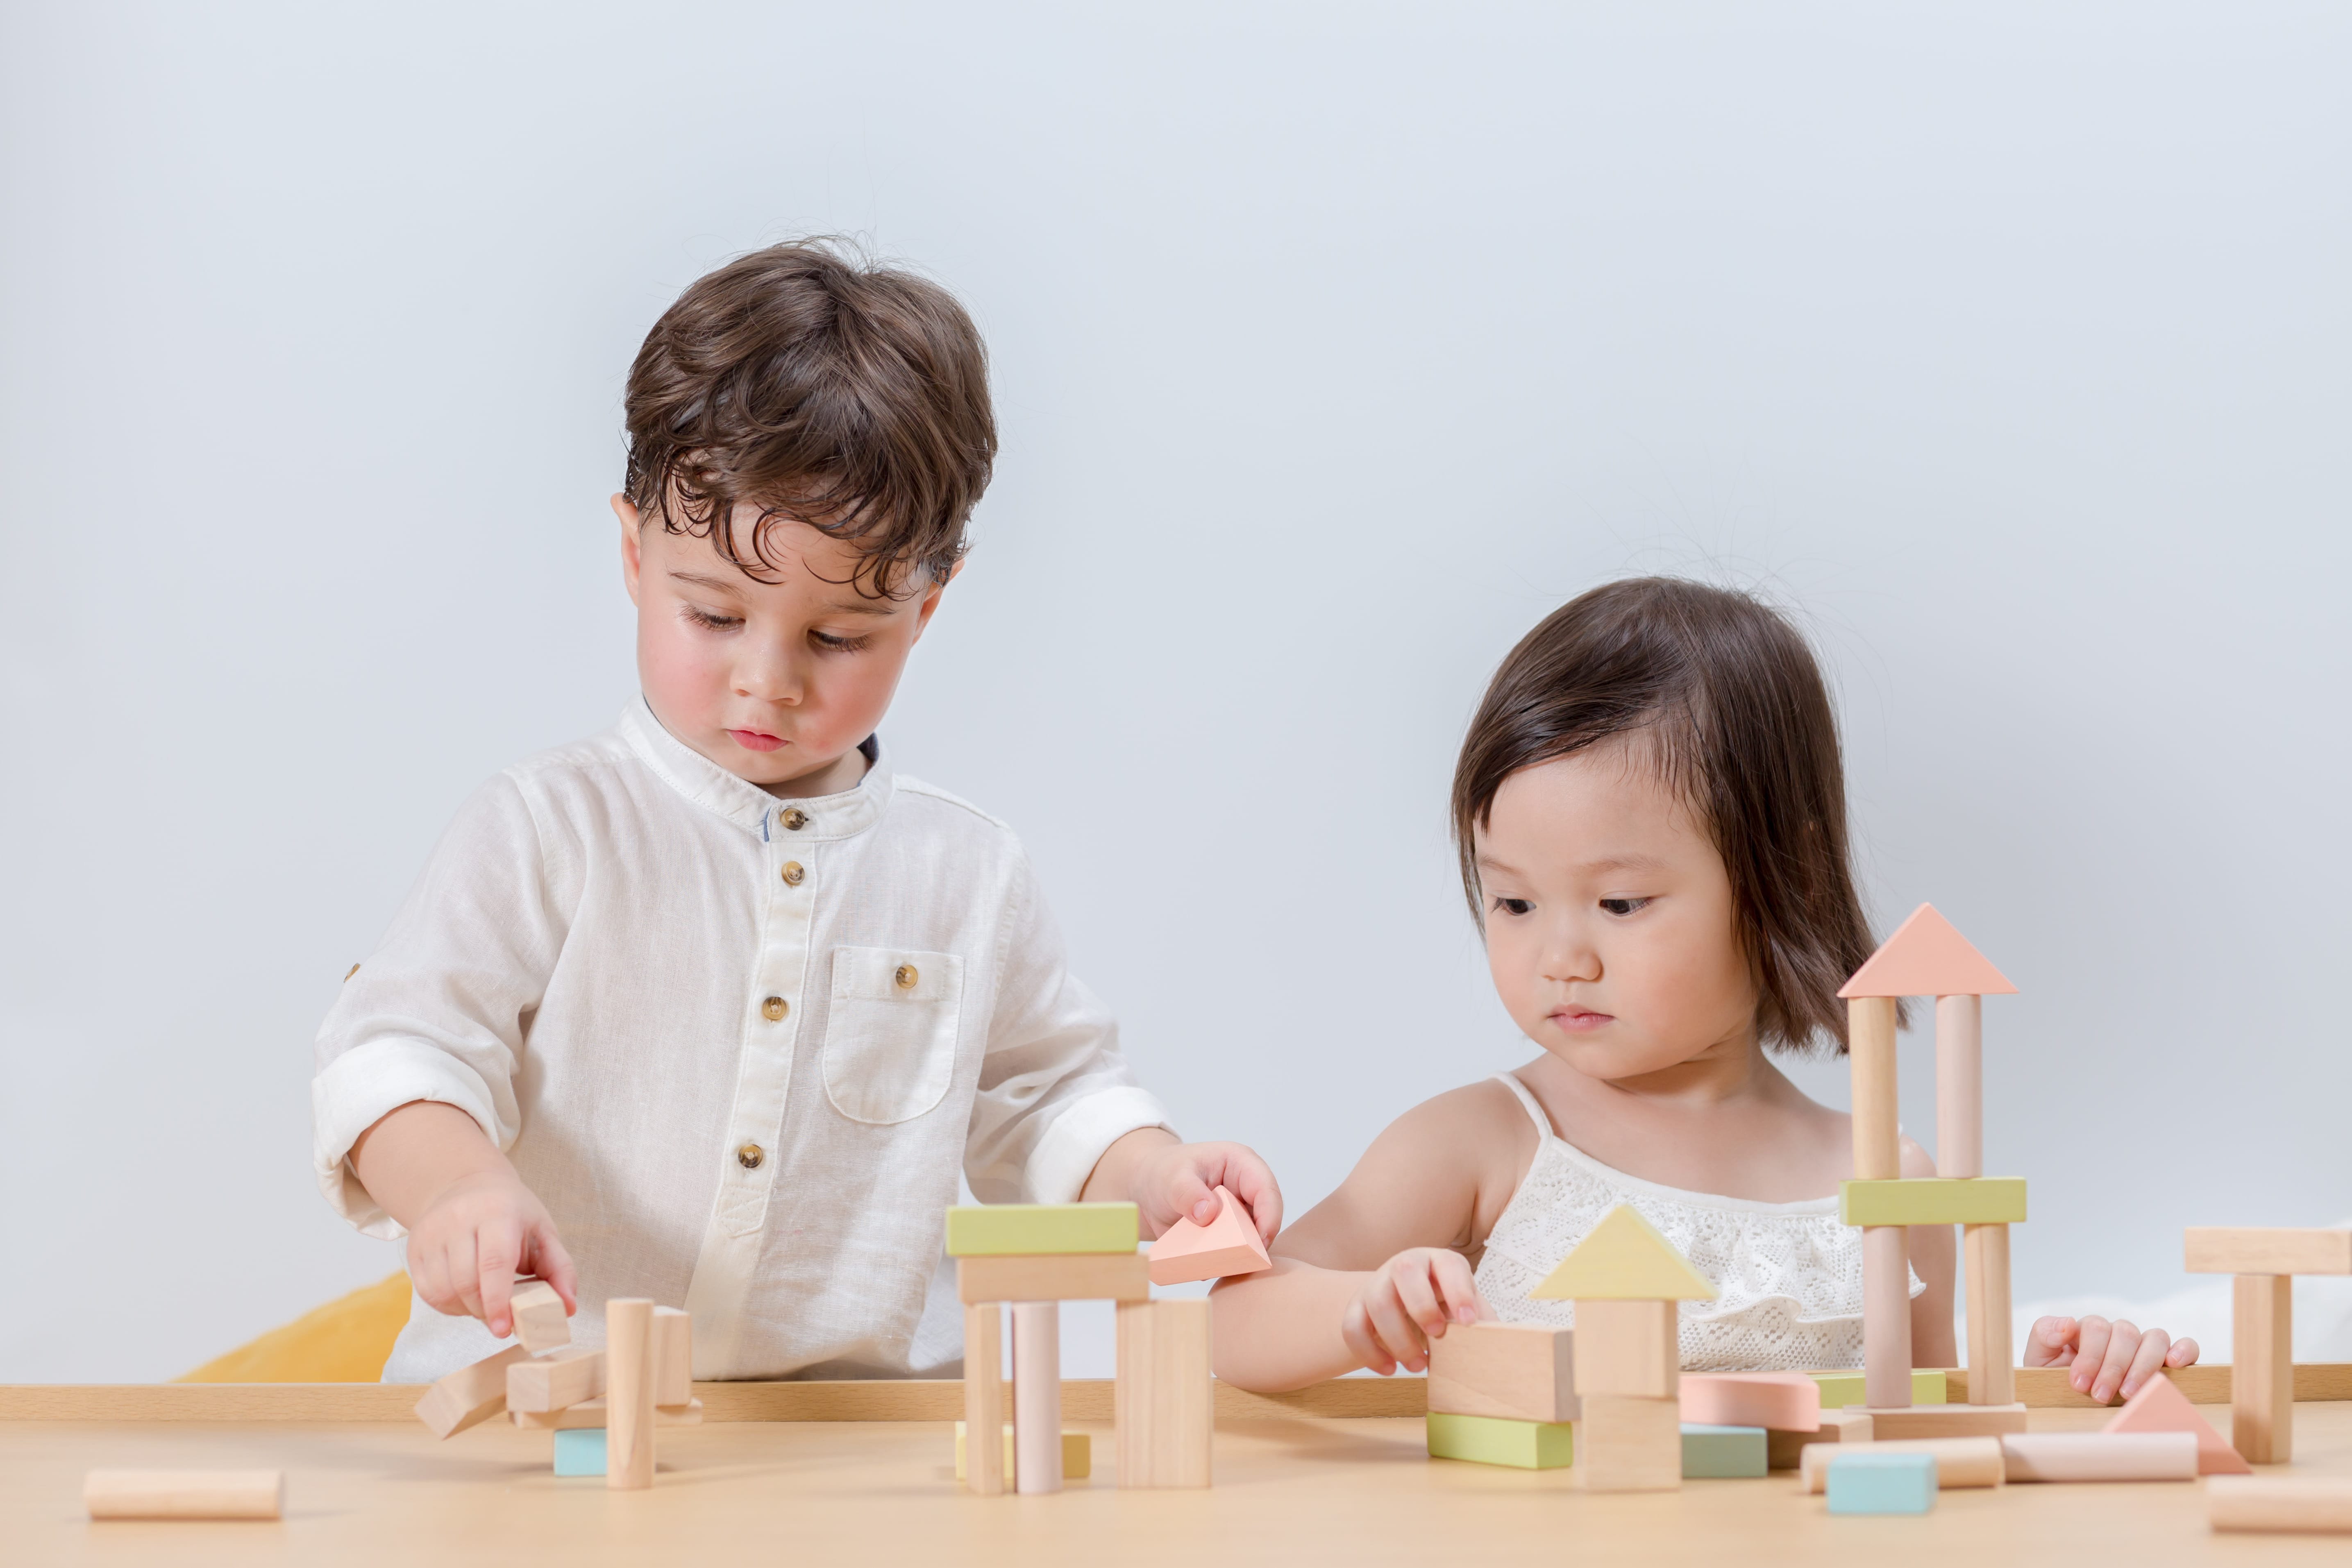 5507_PlanToys_40_UNIT_BLOCKS_Blocks_and_Construction_Creative_Coordination_Language_and_Communications_Social_Fine_Motor_2yrs_Wooden_toys_Education_toys_Safety_Toys_Non-toxic_6.jpg